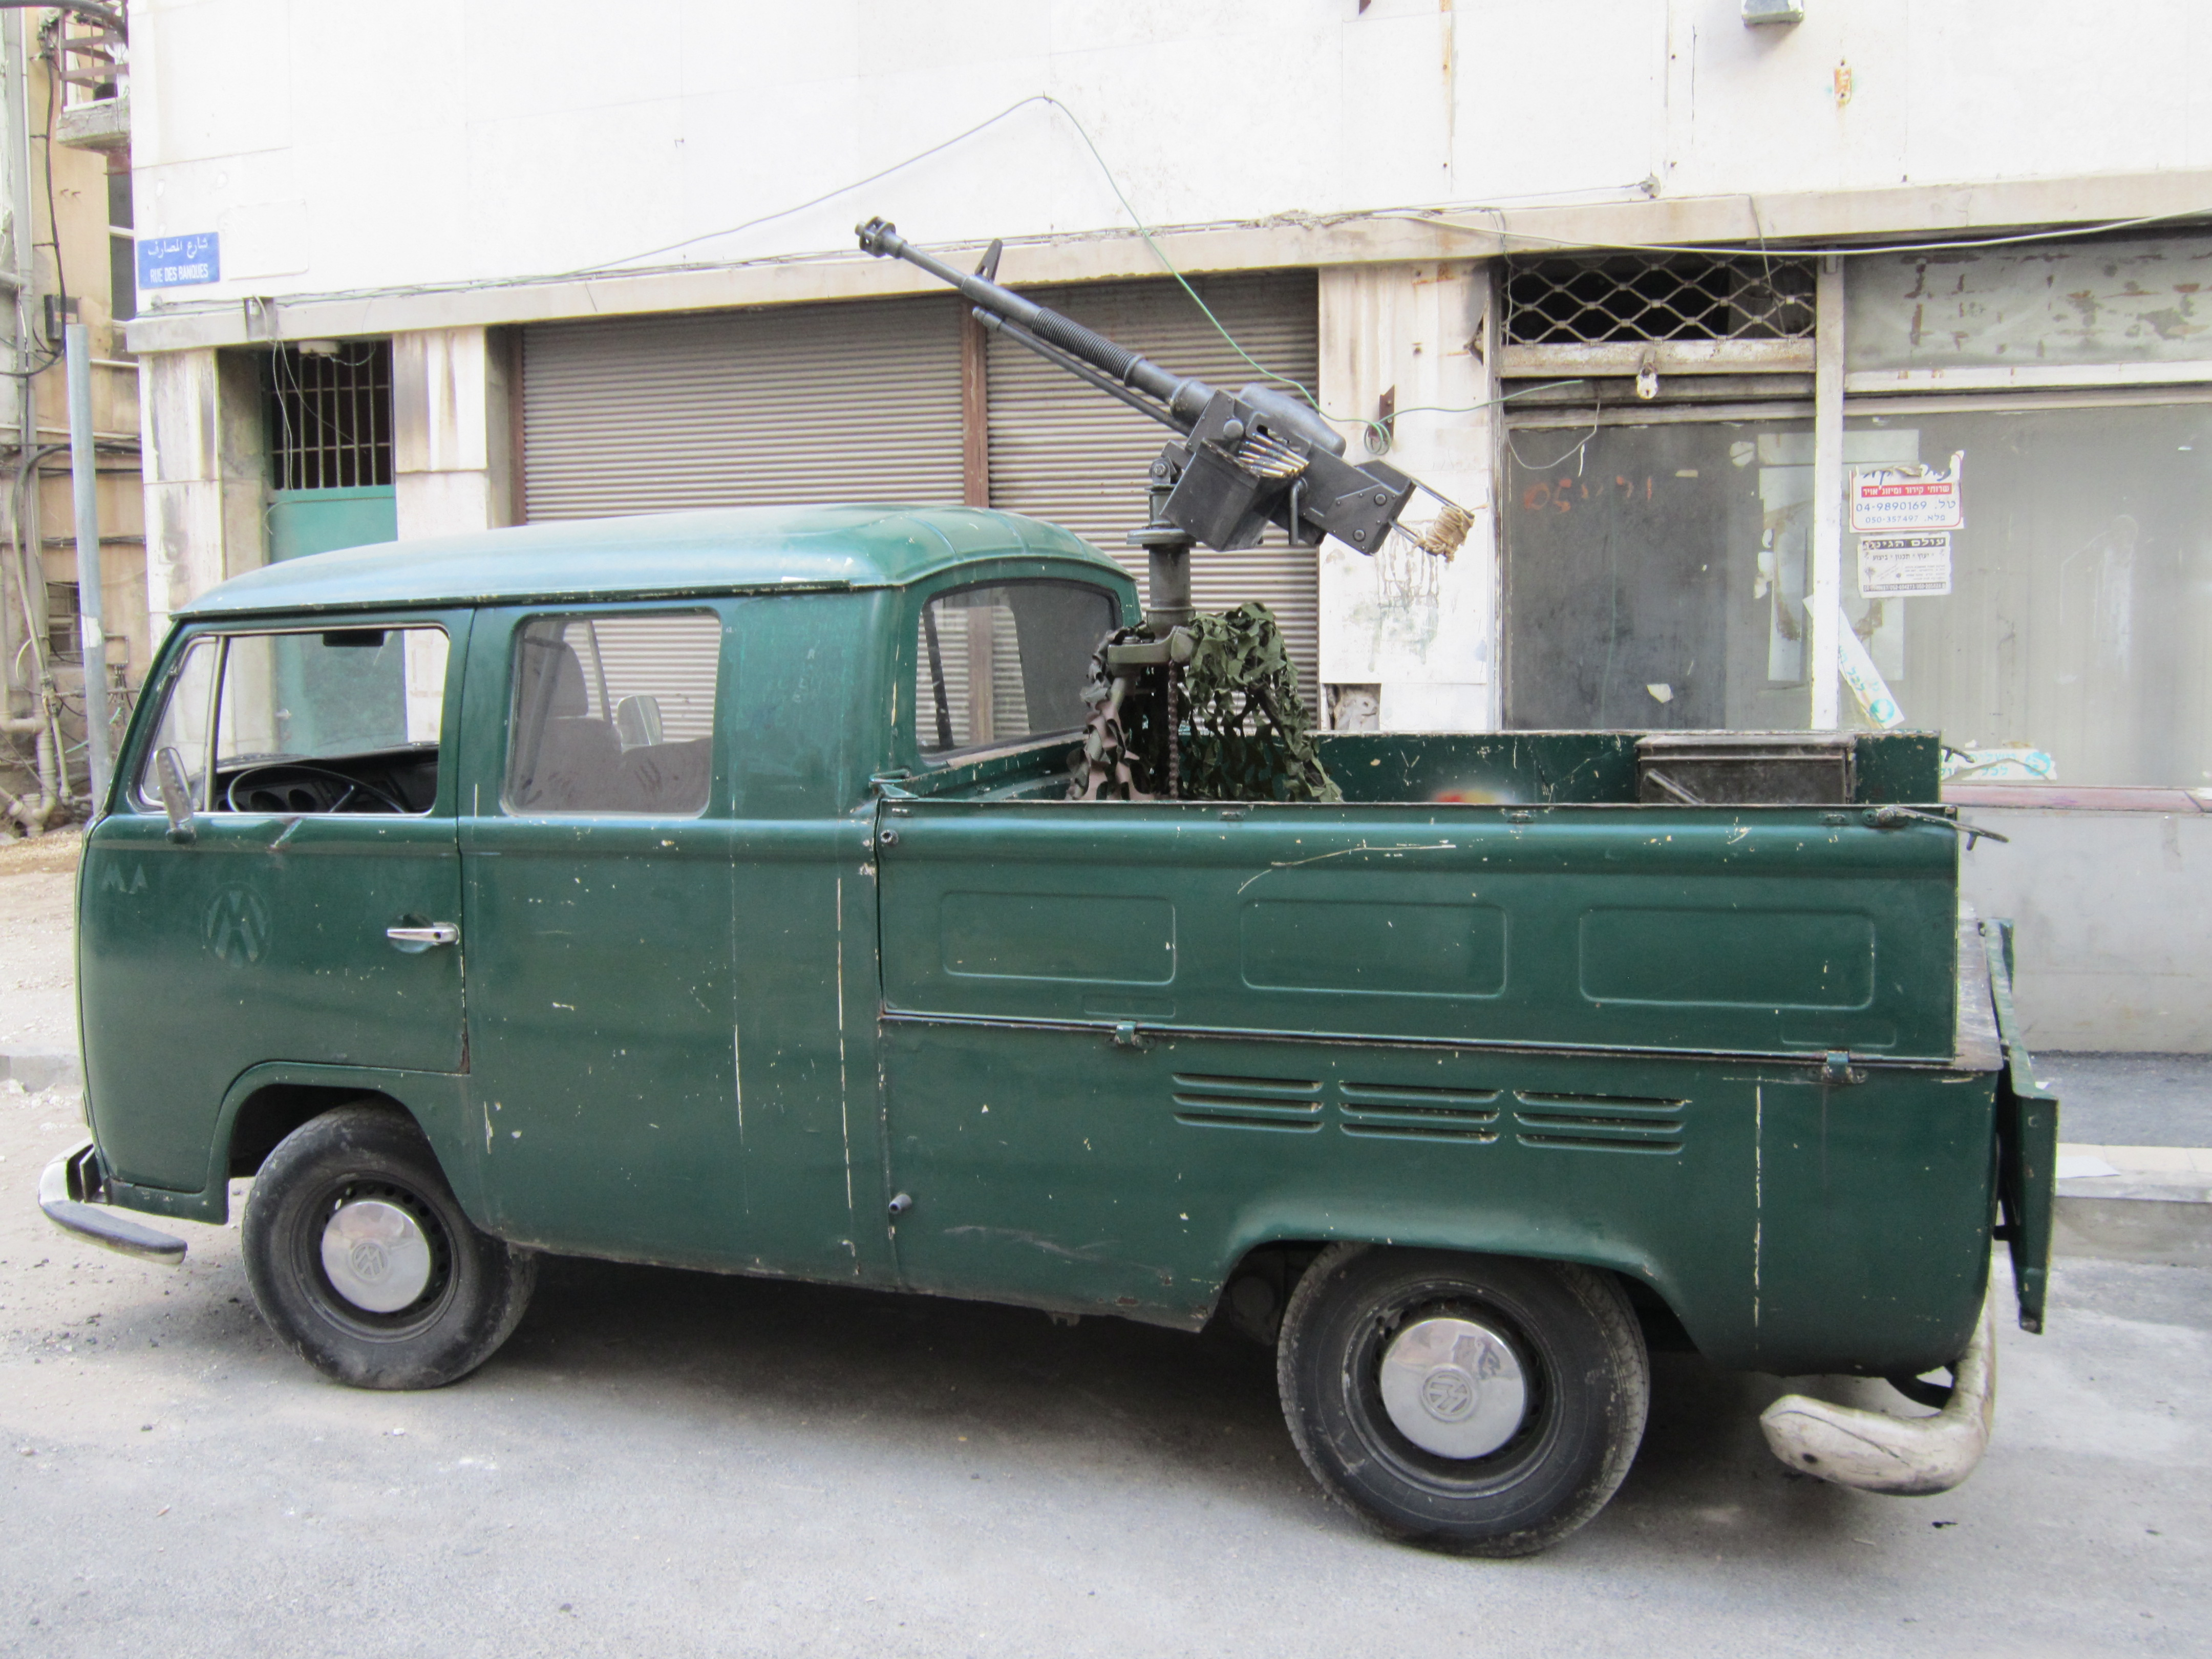 This technical consists of a machine gun mounted in the bed of a VW truck; a typical technical layout. Note the crude appearance and usage of consumer-grade vehicle as a weapon platform.